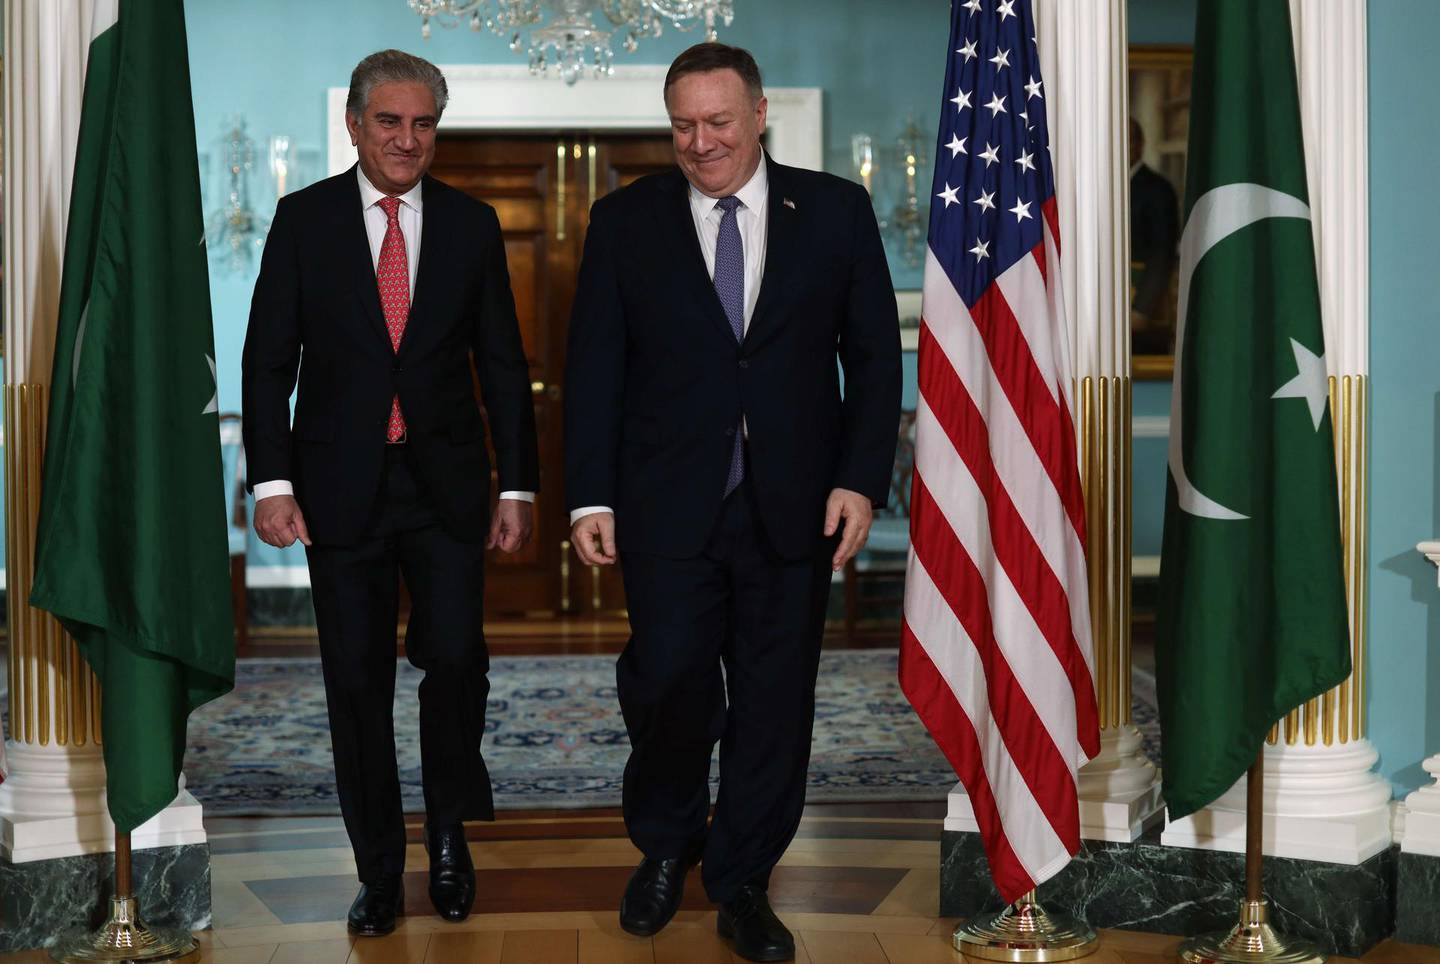 WASHINGTON, DC - JANUARY 17: U.S. Secretary of State Mike Pompeo waves as he welcomes Pakistani Foreign Minister Shah Mehmood Qureshi at the State Department January 17, 2020 in Washington, DC. The two counterparts met to discuss bilateral issues. Foreign Minister Shah Mehmood Qureshi has expressed his support of continued American engagement in Afghanistan for rebuilding efforts.   Alex Wong/Getty Images/AFP == FOR NEWSPAPERS, INTERNET, TELCOS & TELEVISION USE ONLY ==